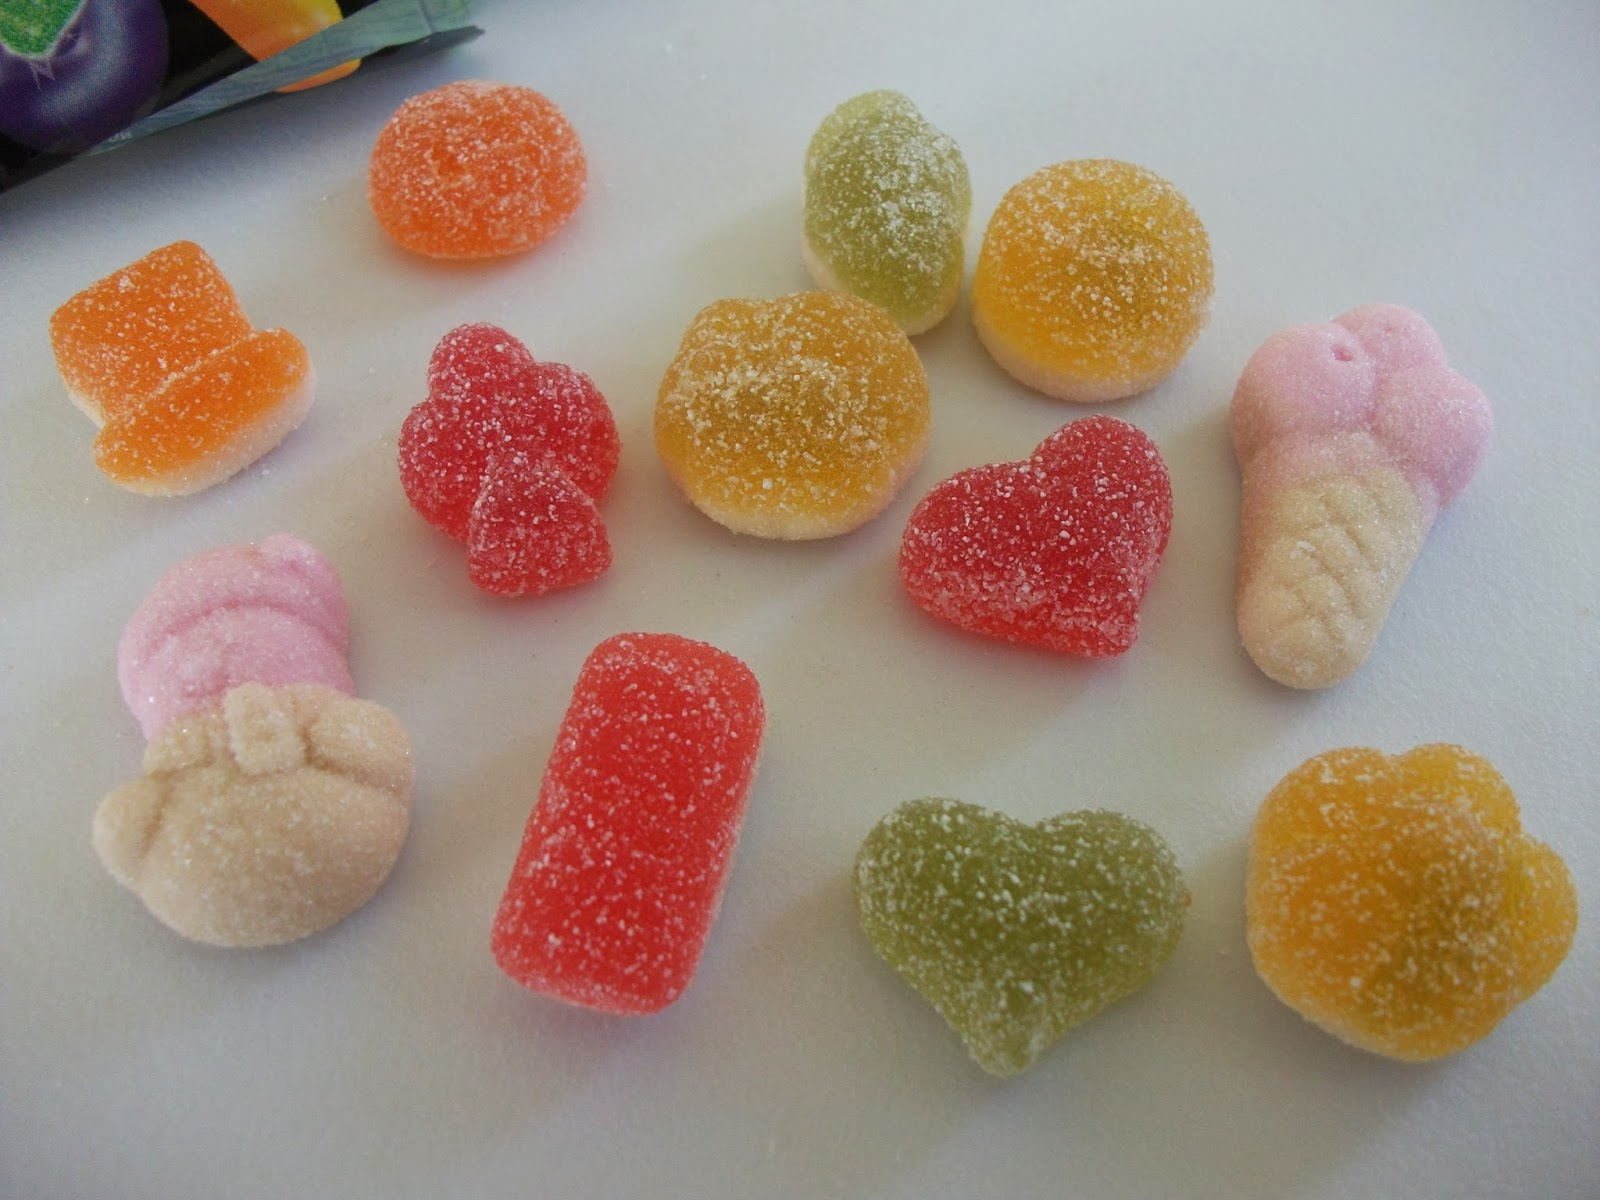 rowntree's randoms sweet n sour